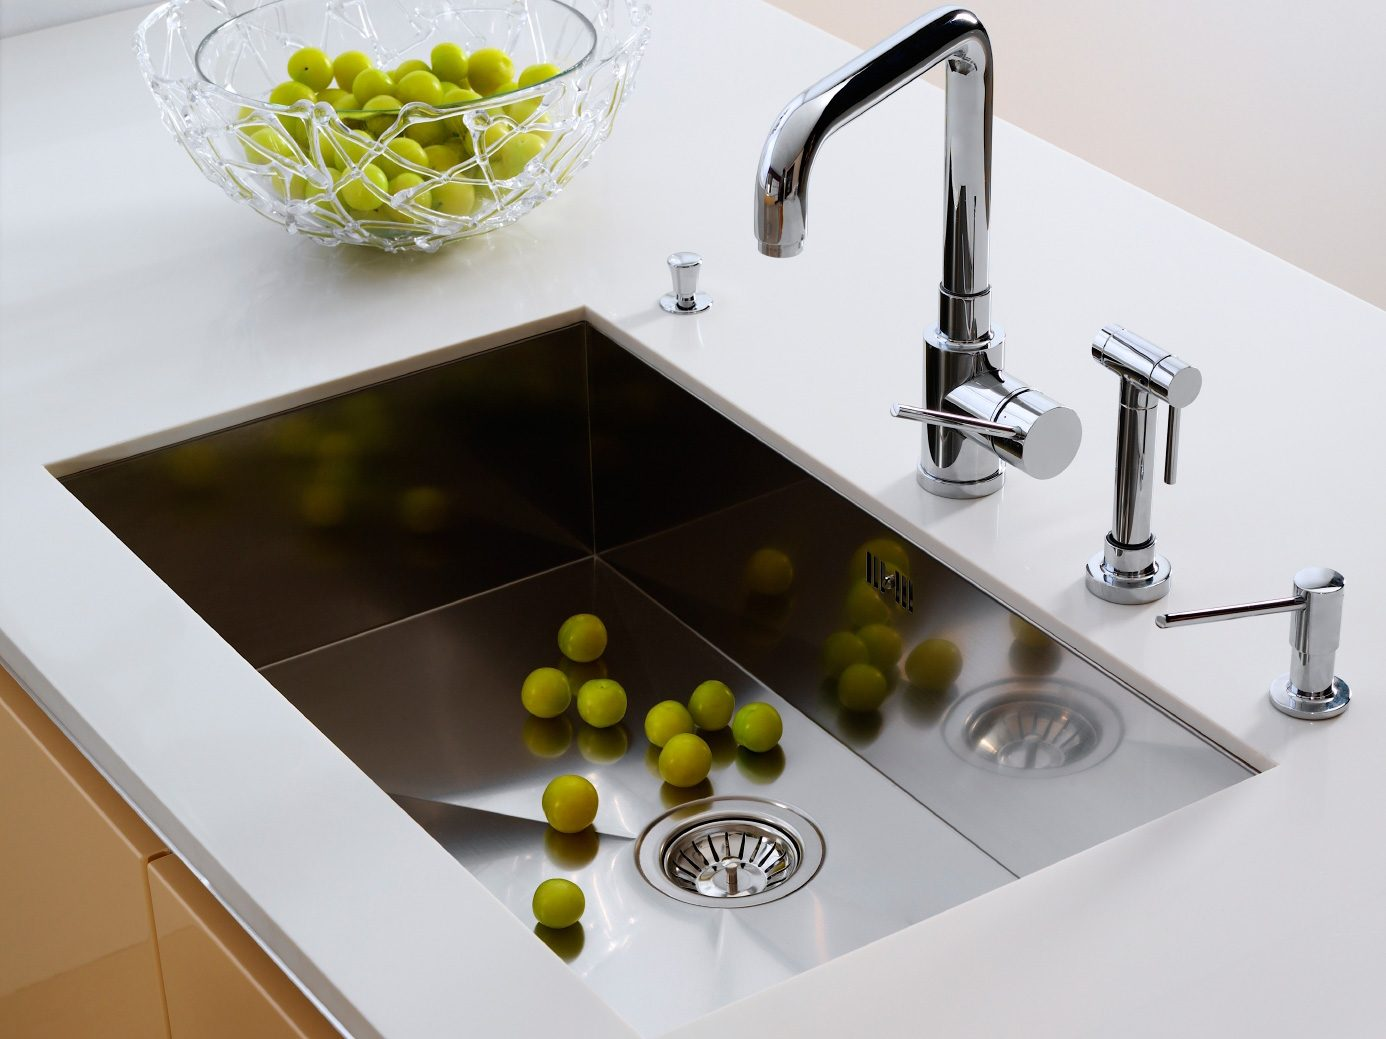 Kitchen-Cleaning Tips: Disinfect a Garbage Disposal